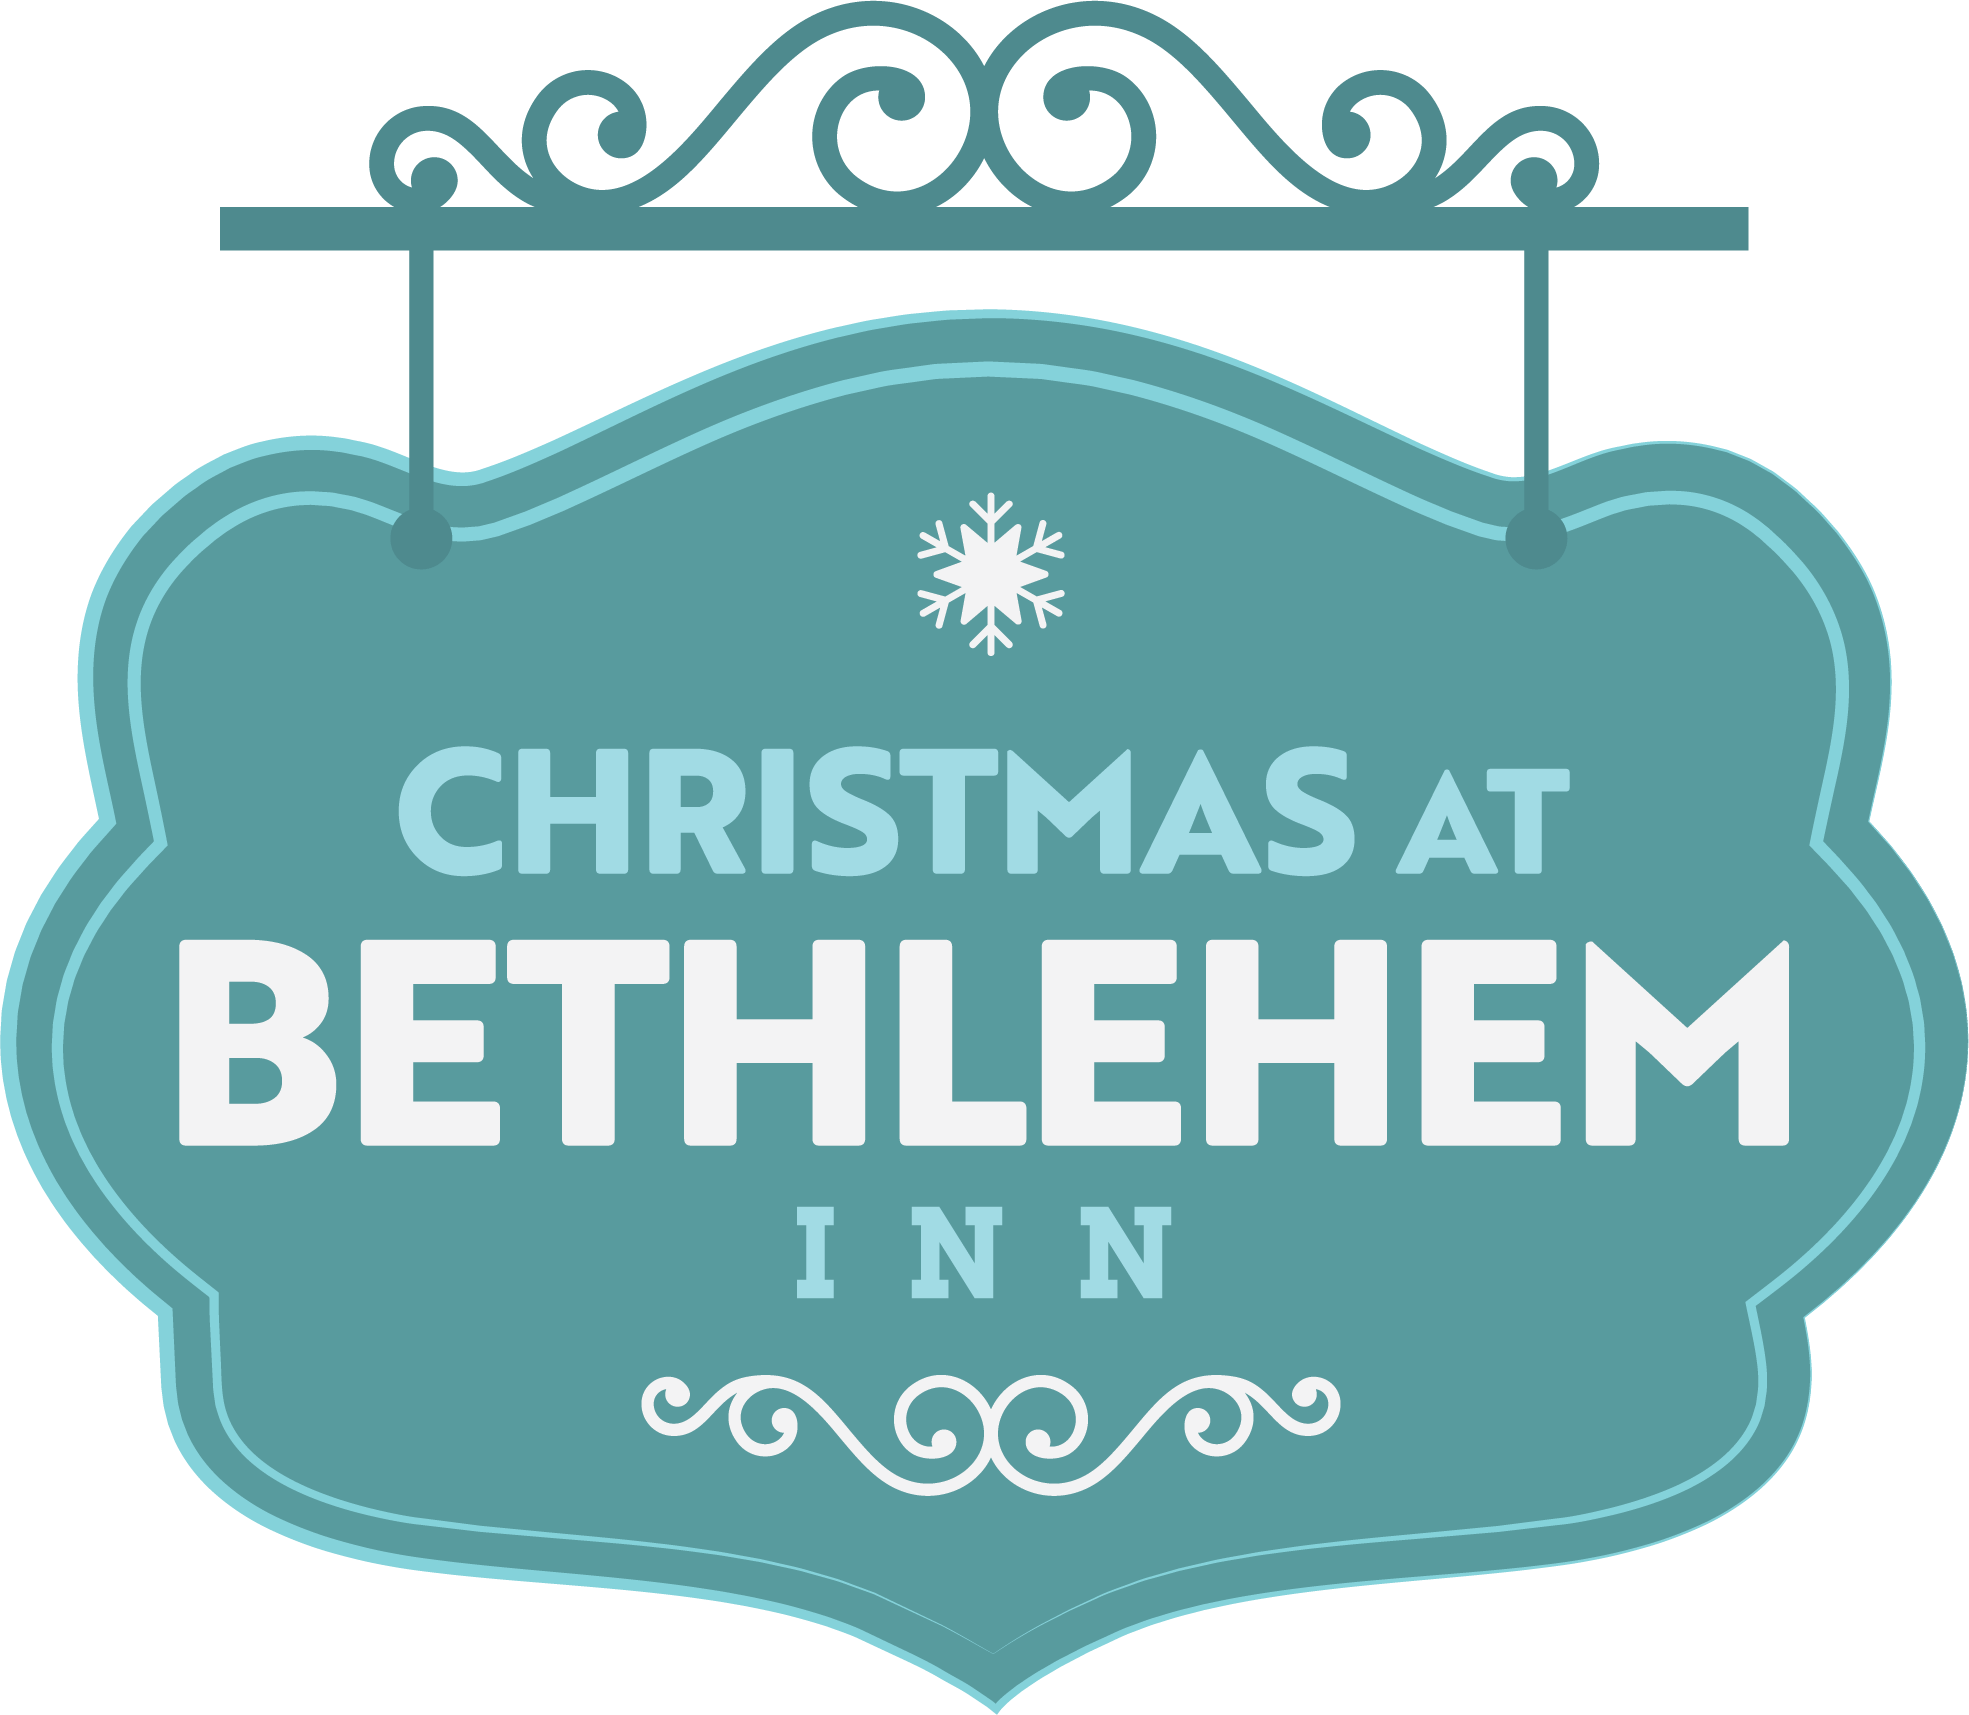 Christmas At Bethlehem Inn